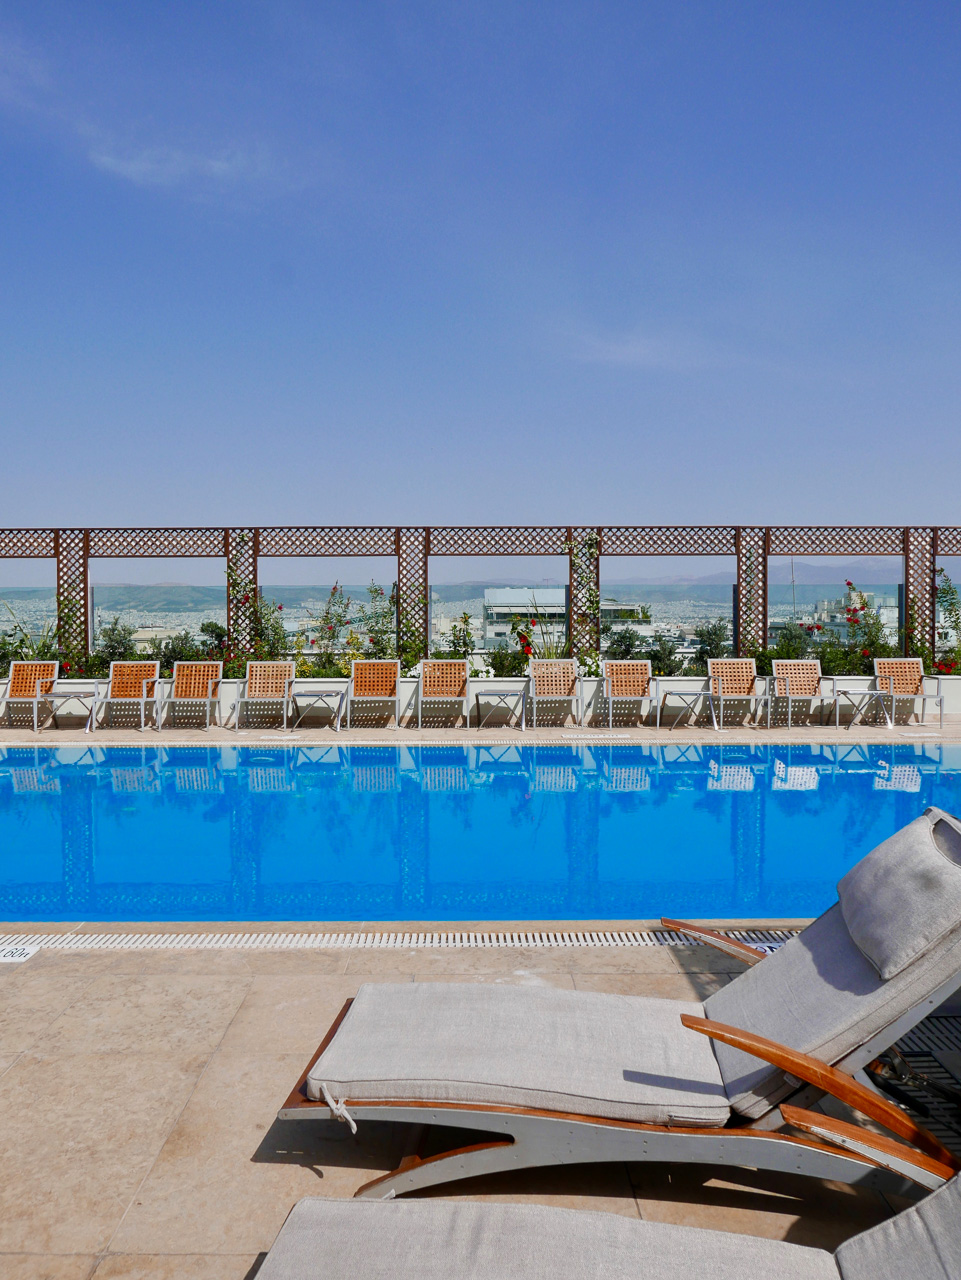 Cara Sharratt Travel - Athens, Greece - Hotel Grande Bretagne, Rooftop Pool